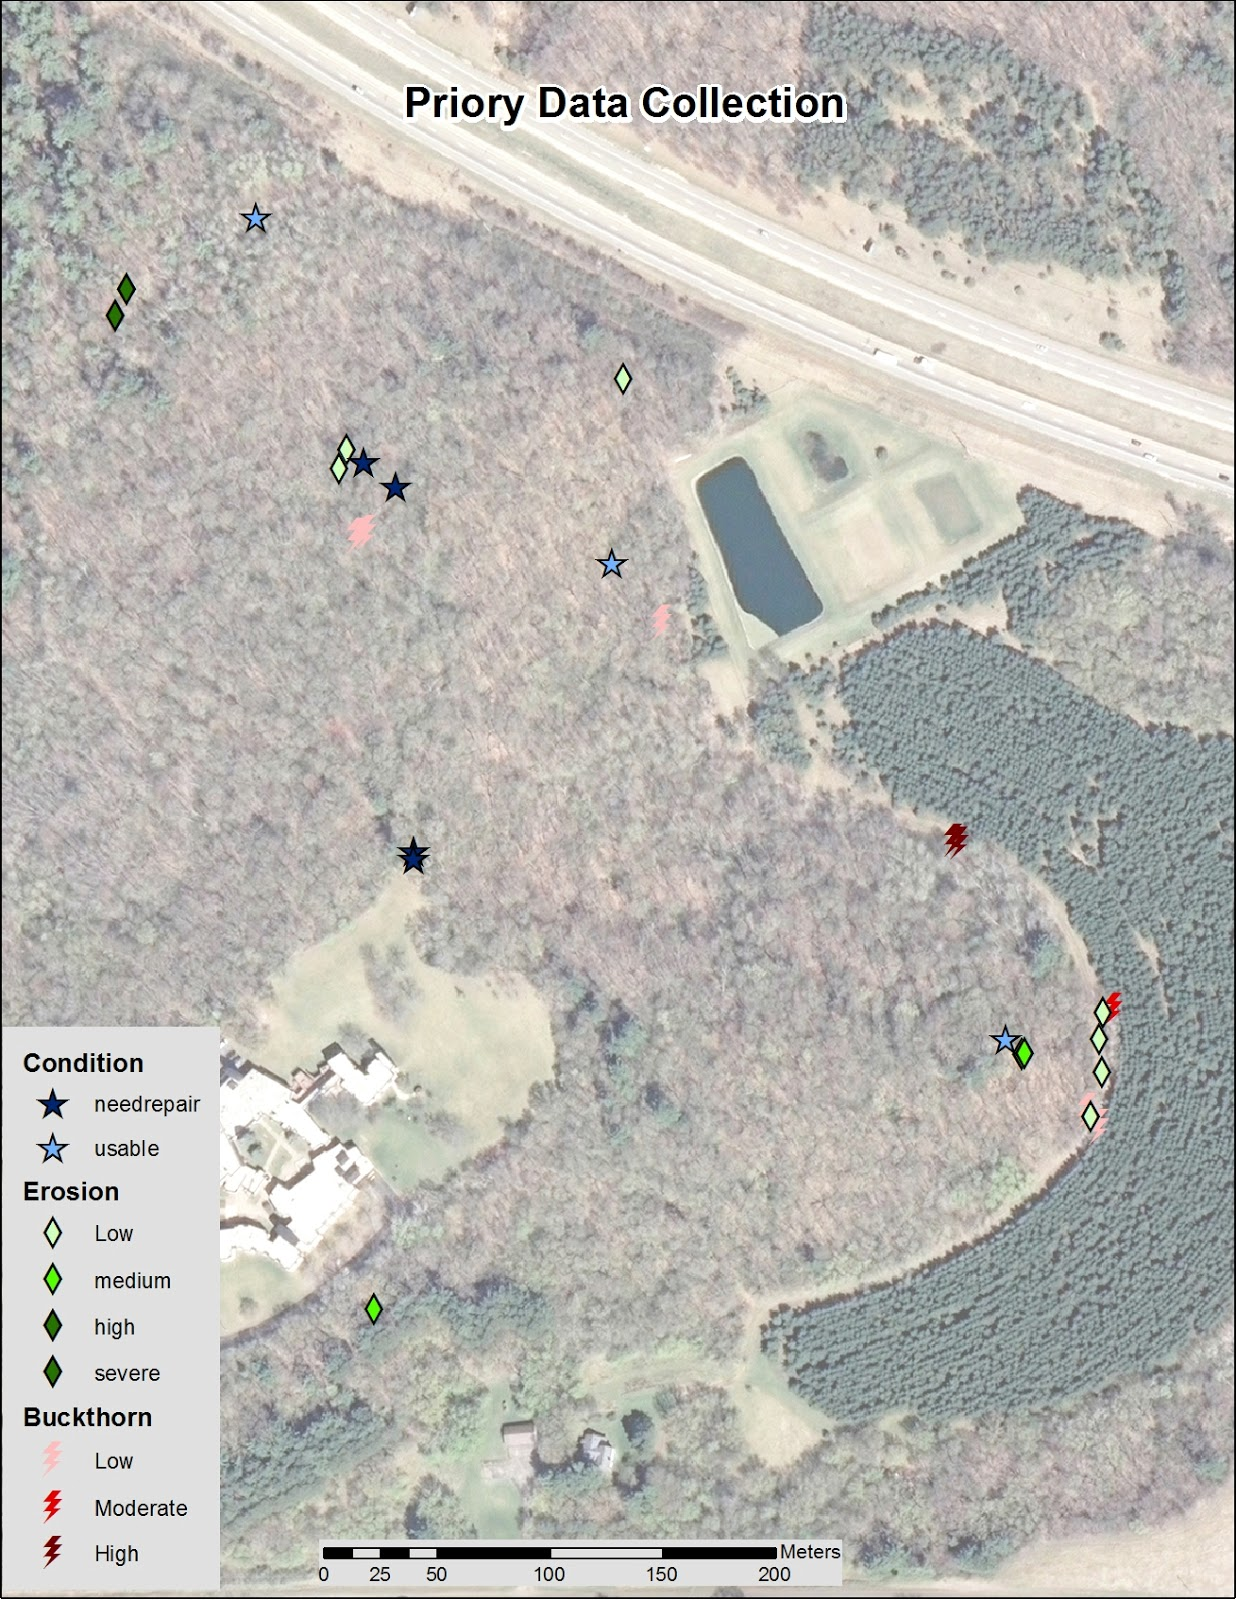 figure 3 the point locations of the three feature benches star erosion diamond and buckthorn bolt